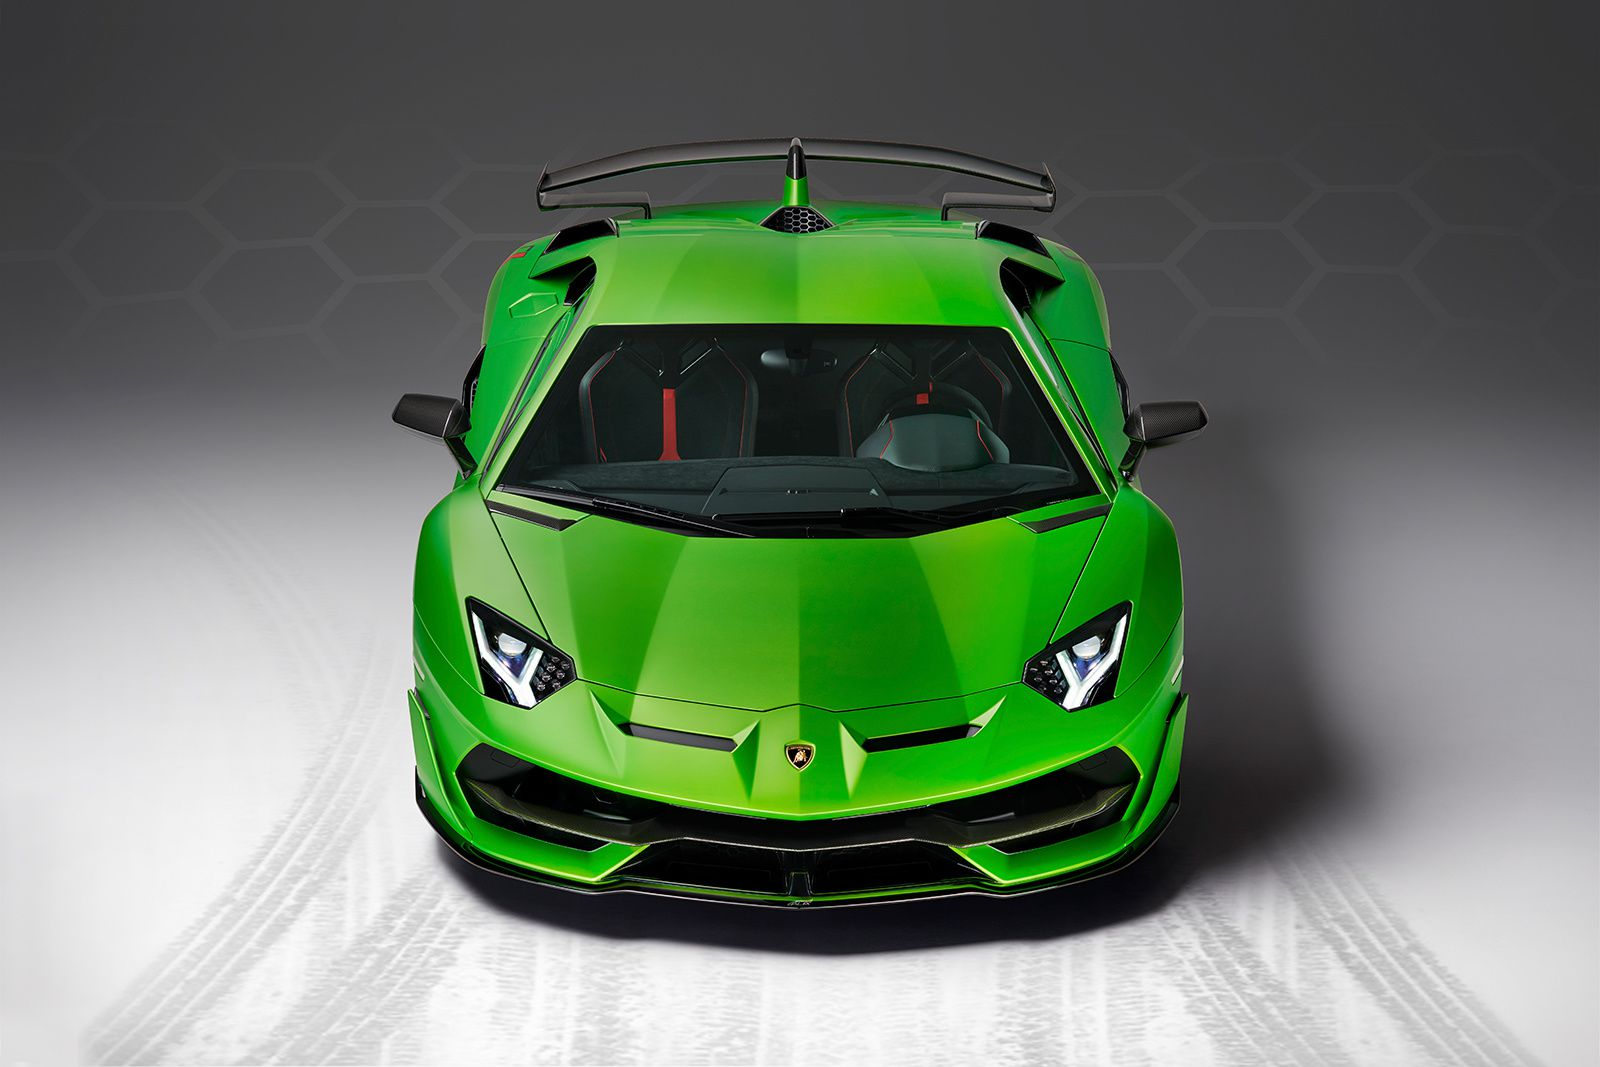 Lamborghini Aventador SVJ : authentique collection de superlatifs